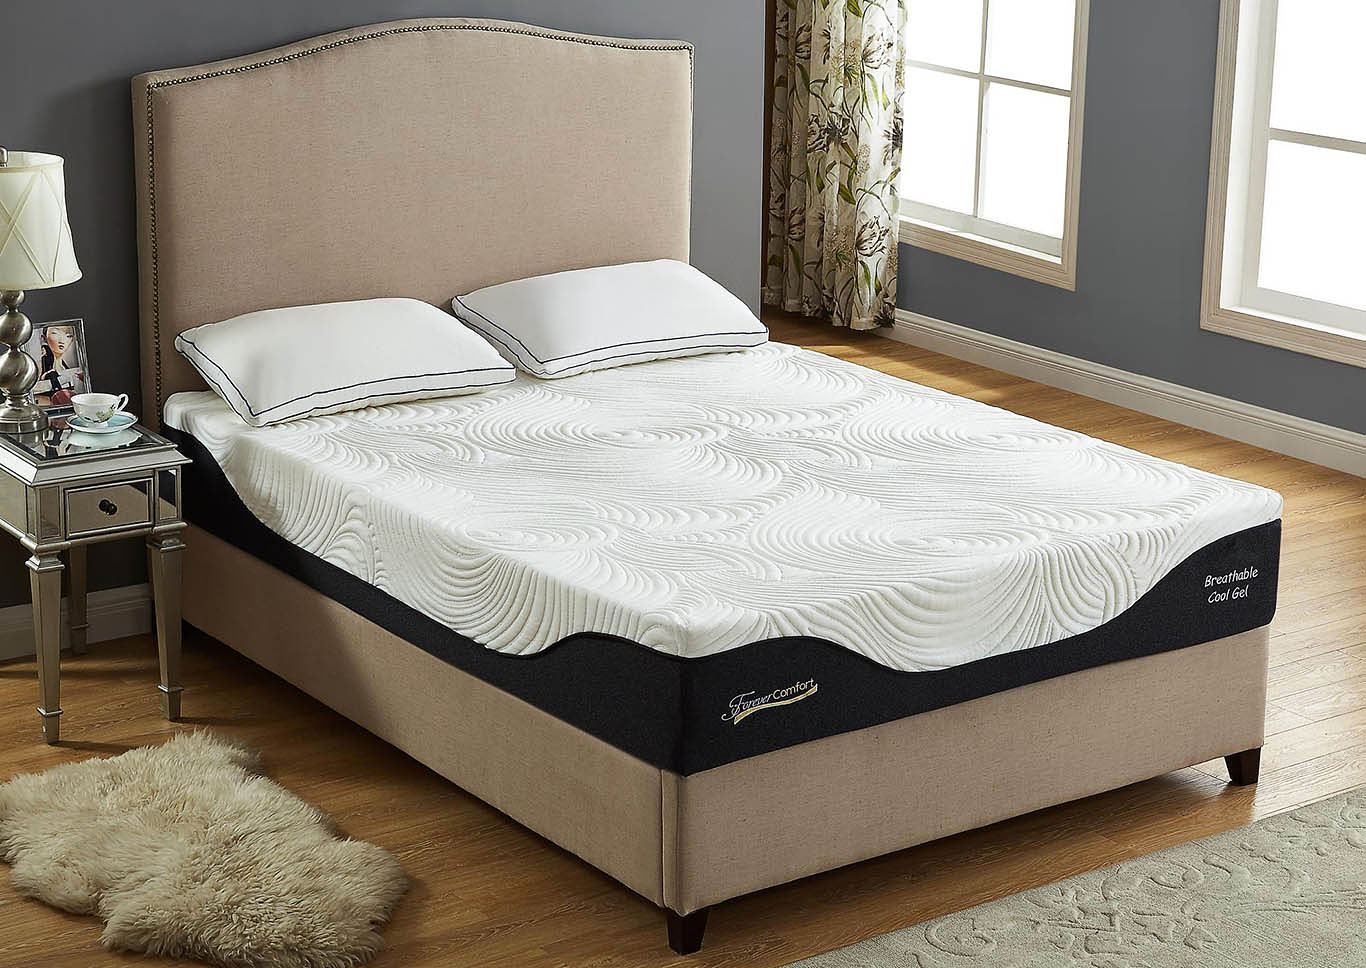 12 Gel Memory Foam Queen Size Mattress,Global Trading